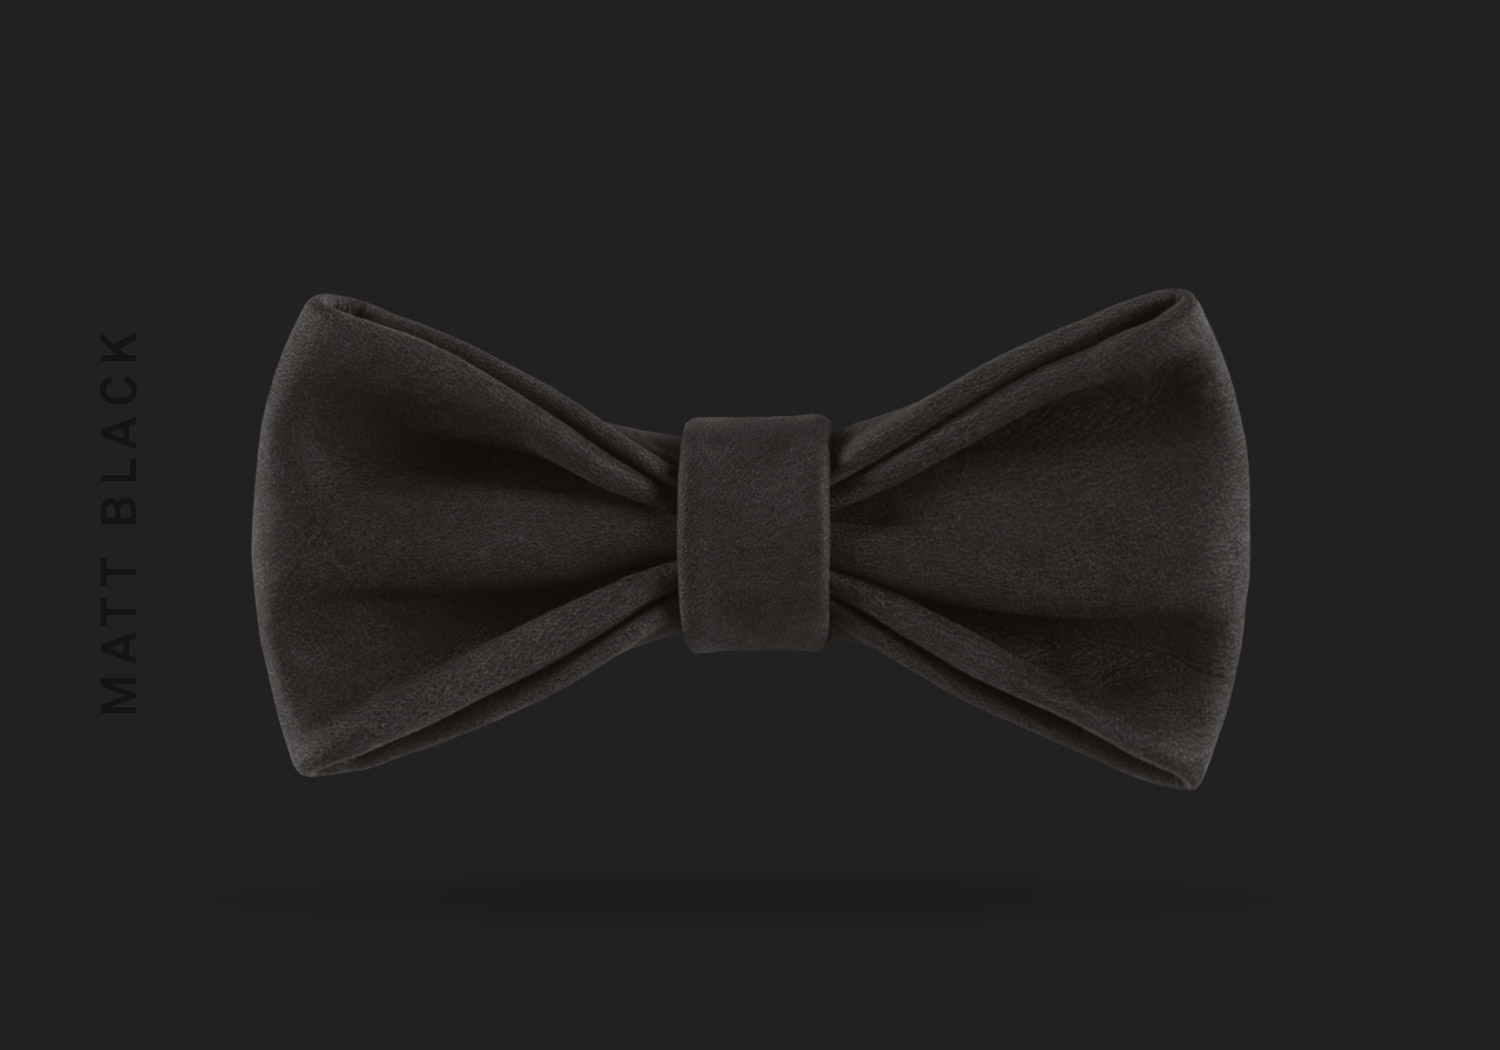 WEEF-Bow-Tie-Matt-Black-v2